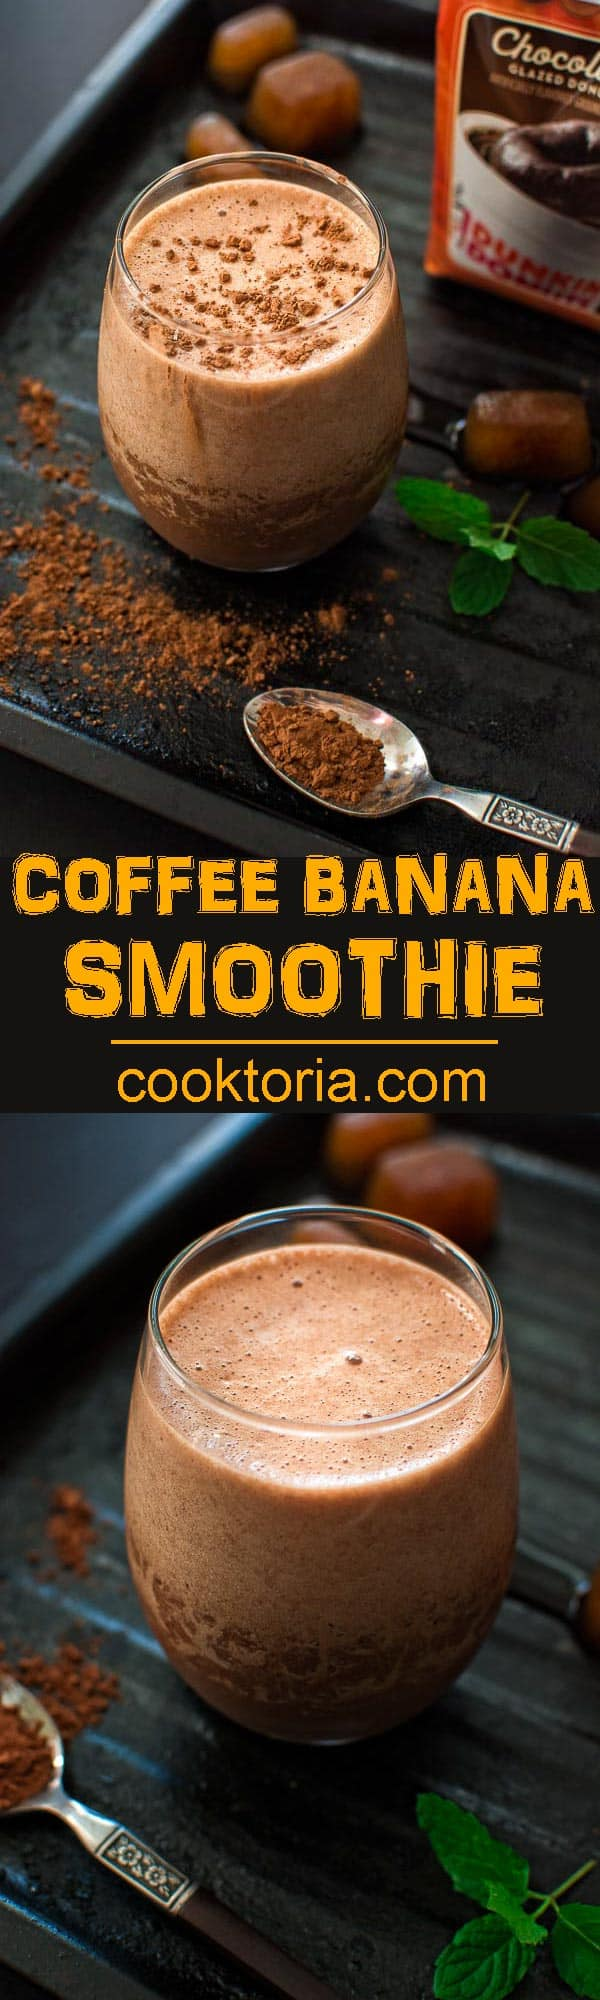 Rich, chocolaty and frothy, this Coffee Banana Smoothie makes a perfect breakfast of an afternoon treat. ❤ COOKTORIA.COM